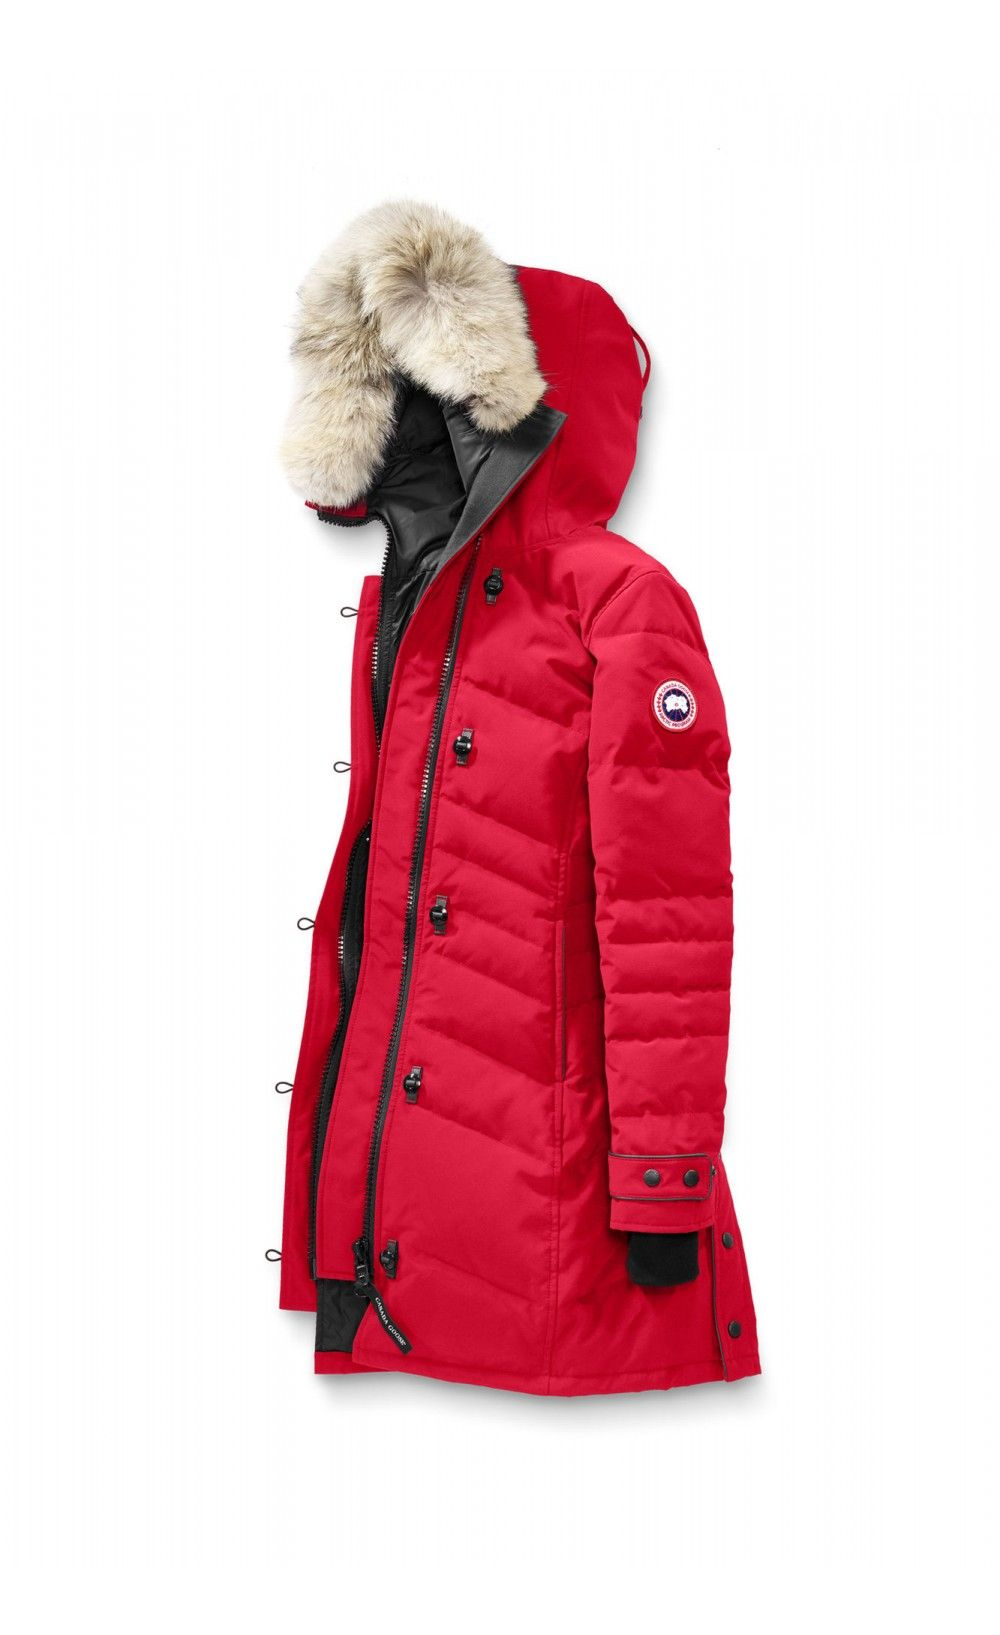 Canada Goose Lorette Parka Red Women - Canada Goose  canadagoose  women   streetstyle  parka  lifestyle  jacket  outlet 8d87368cf